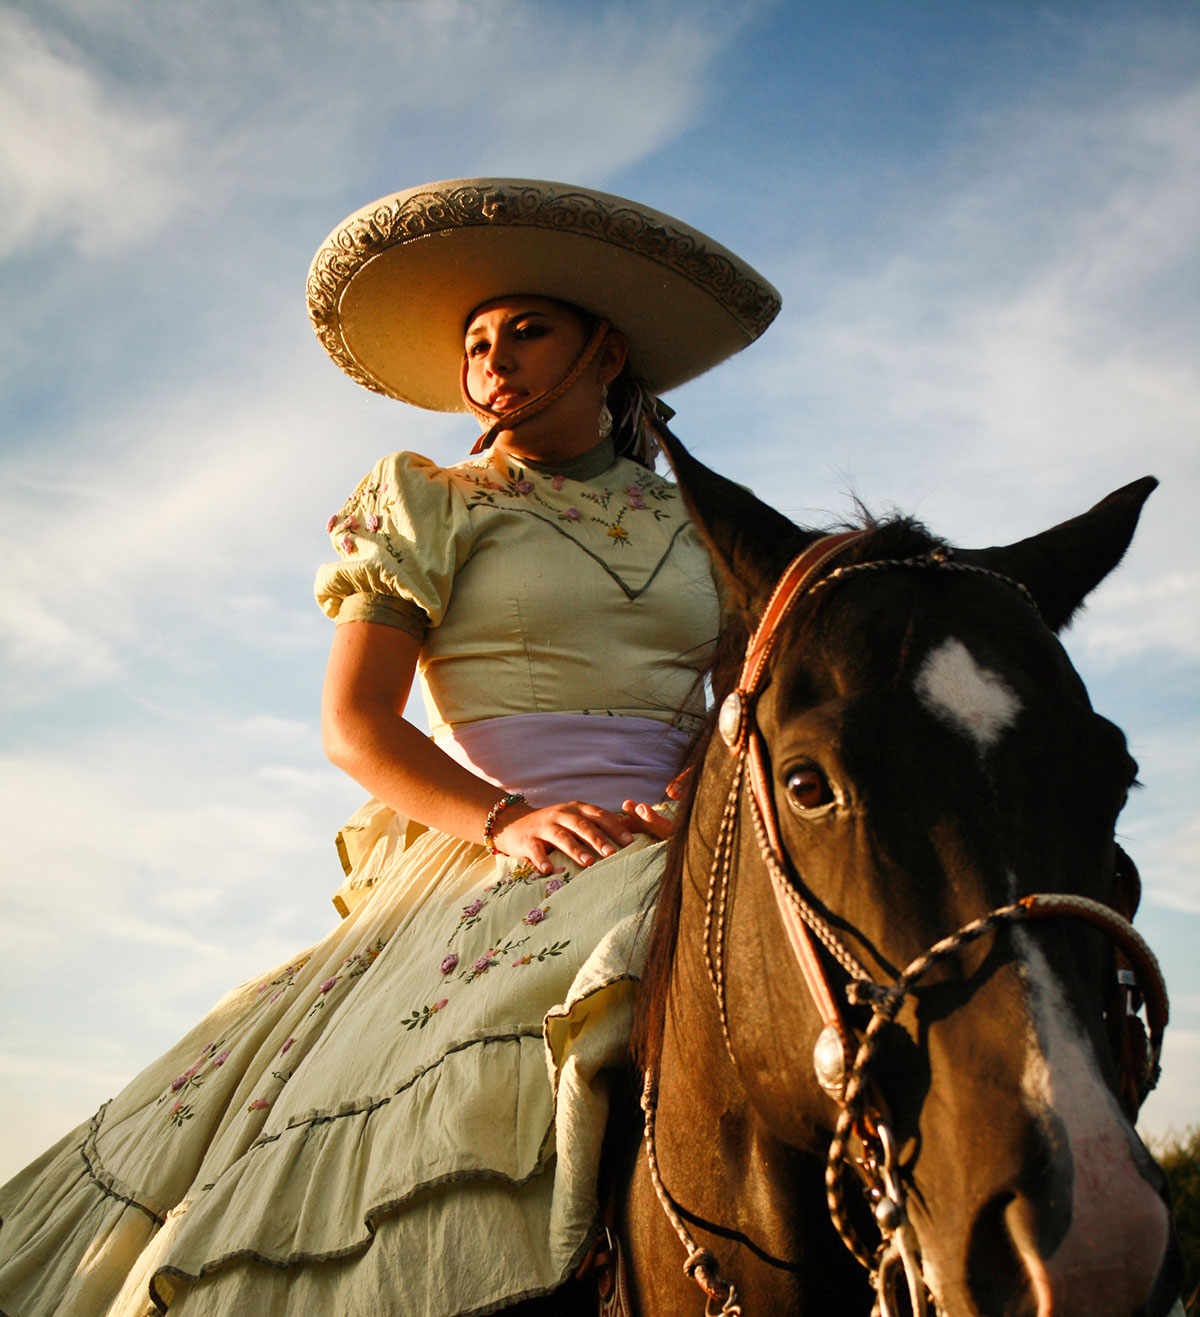 Made In Mexico - 9 Things You Didn't Know about Mexican Culture